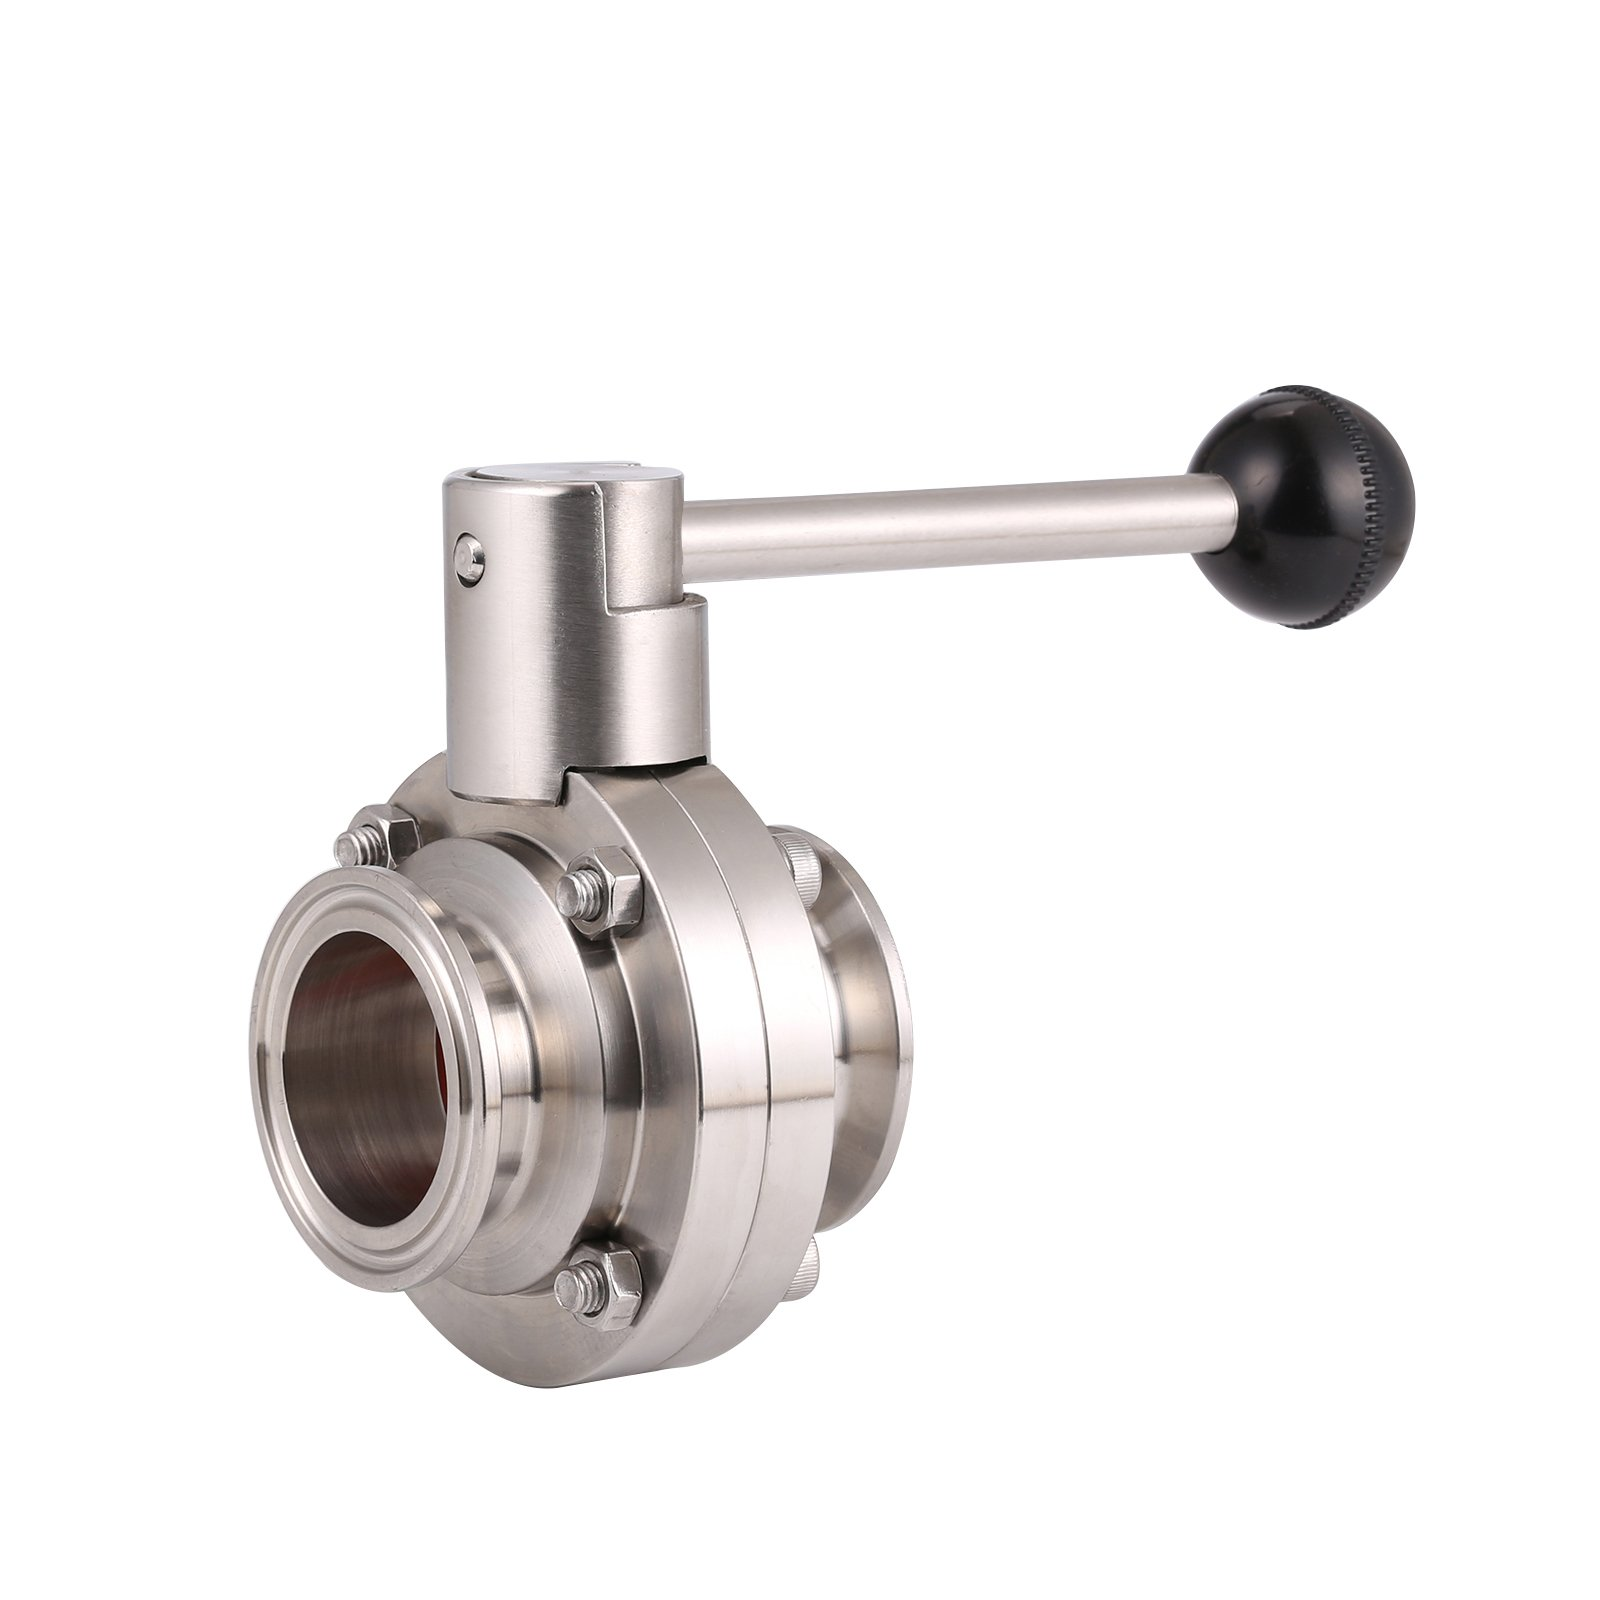 BOKYWOX 1.5'' Sanitary Stainless Steel 304 Tri Clamp Butterfly Valve with Silicon Seal Quick Connector